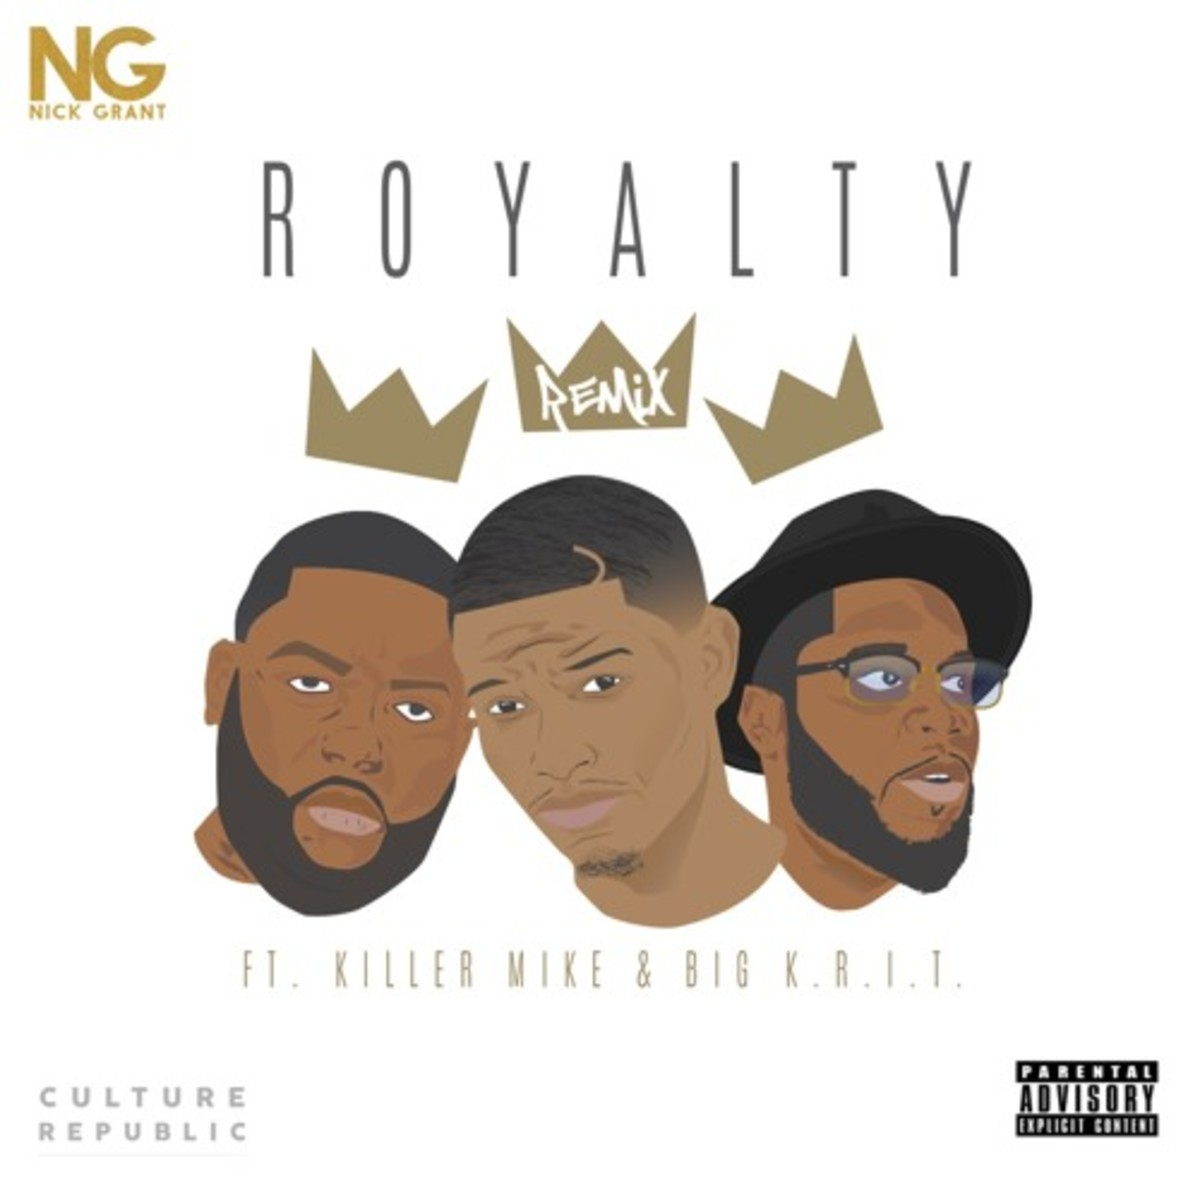 nick-grant-royalty-remix.jpg